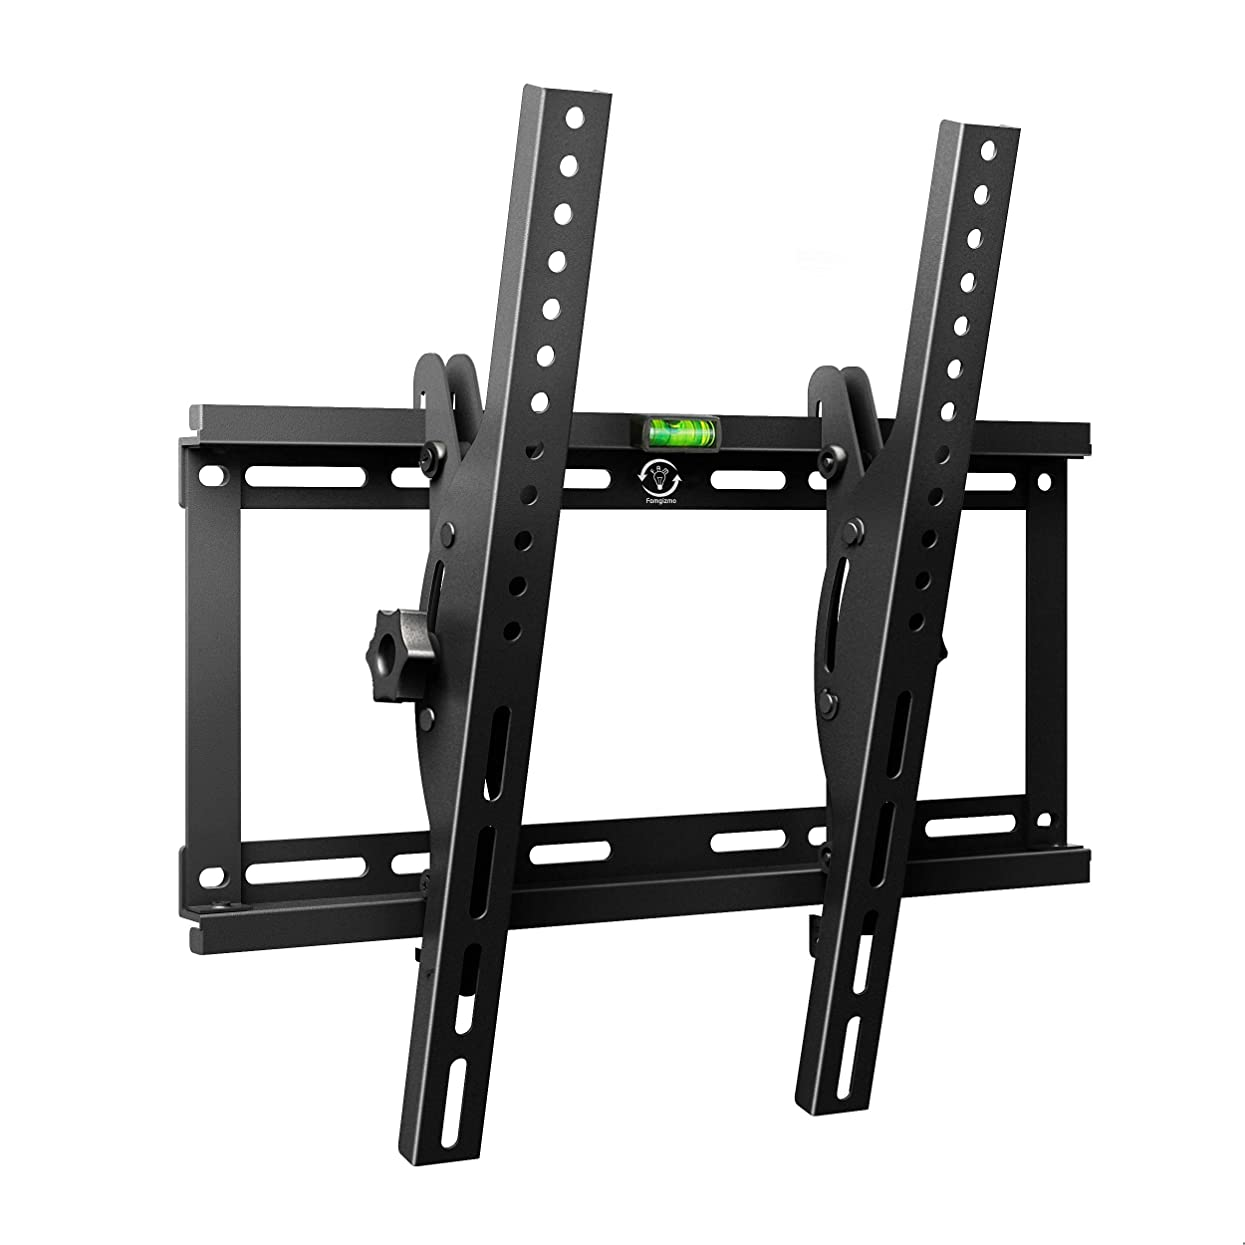 Tilt TV Wall Mount Bracket for 23-55 Inch Samsung Sony Vizio LG Sharp LED LCD OLED QLED Plasma Flat Curved Screen TVs, VESA 400x400mm 132lbs Capacity, Fits 16